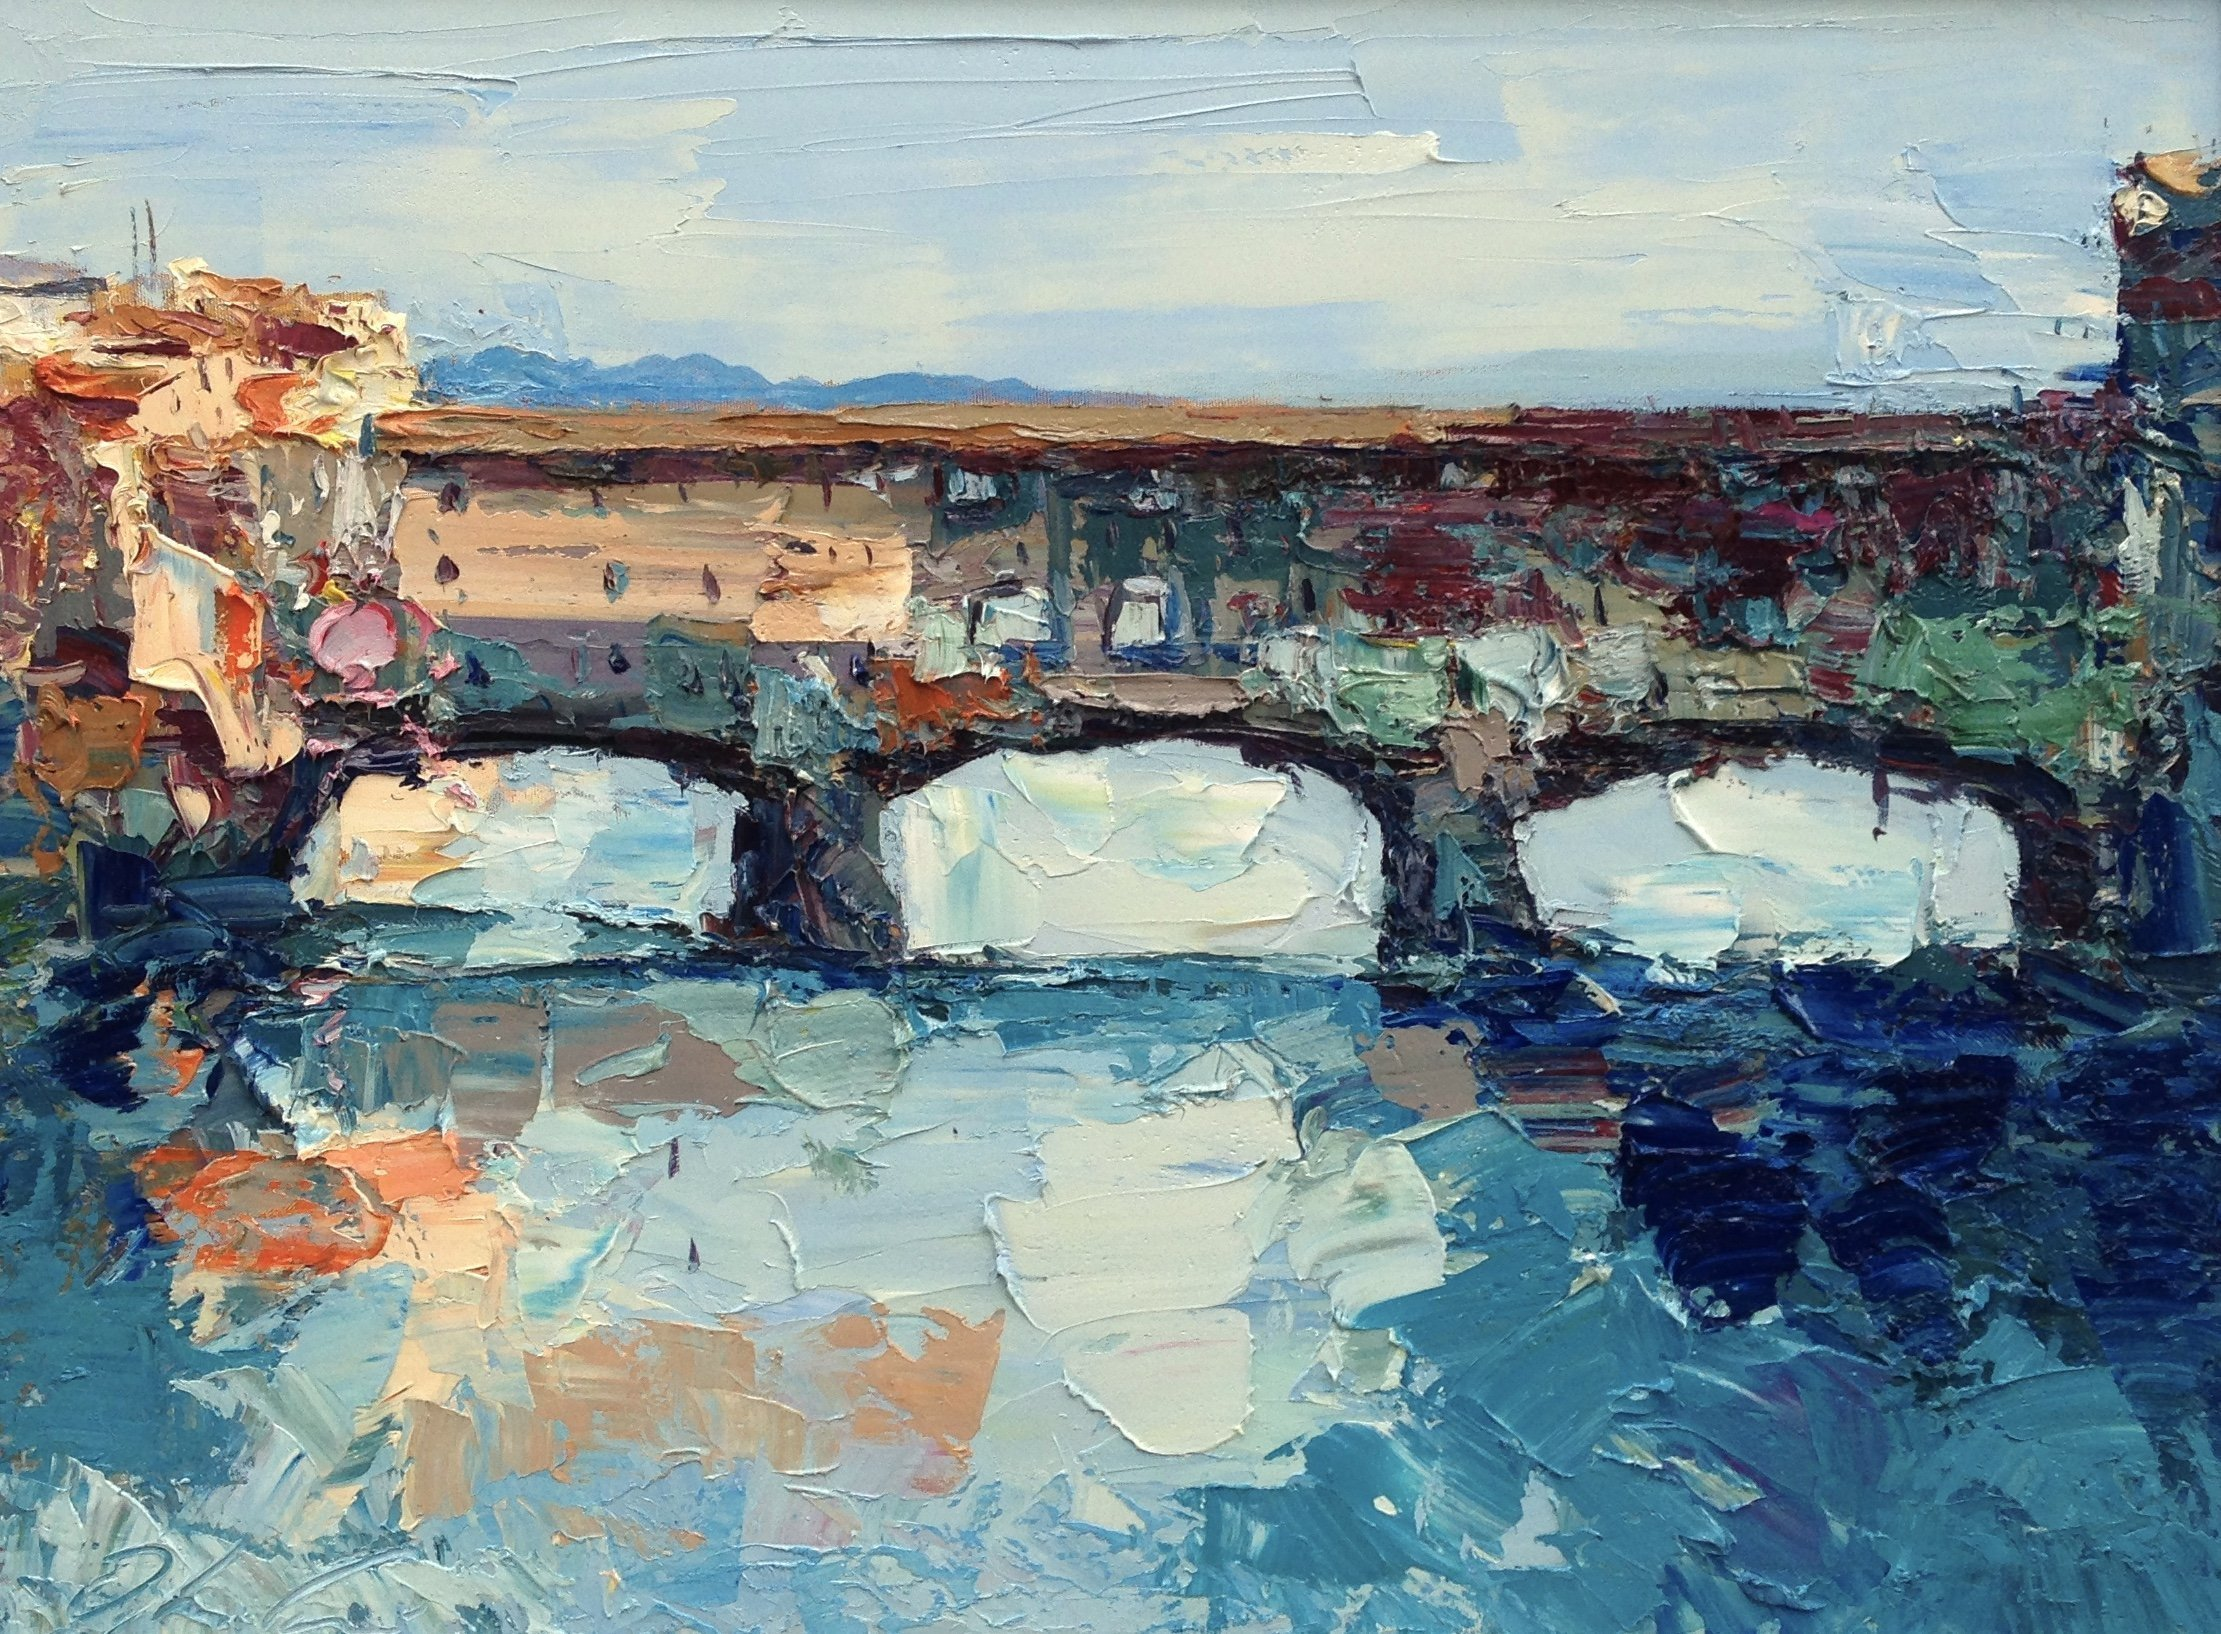 Firenze Ponte Vecchio Abstract Canvas Art Arno River Prints Italy Artwork Home Decor Living Room Wall Office Decor Christmas Gifts Unique for Him Her Men Women - from Agostino Veroni by AGOSTINO VERONI ORIGINAL PAINTINGS AND FINE ART PRINTS